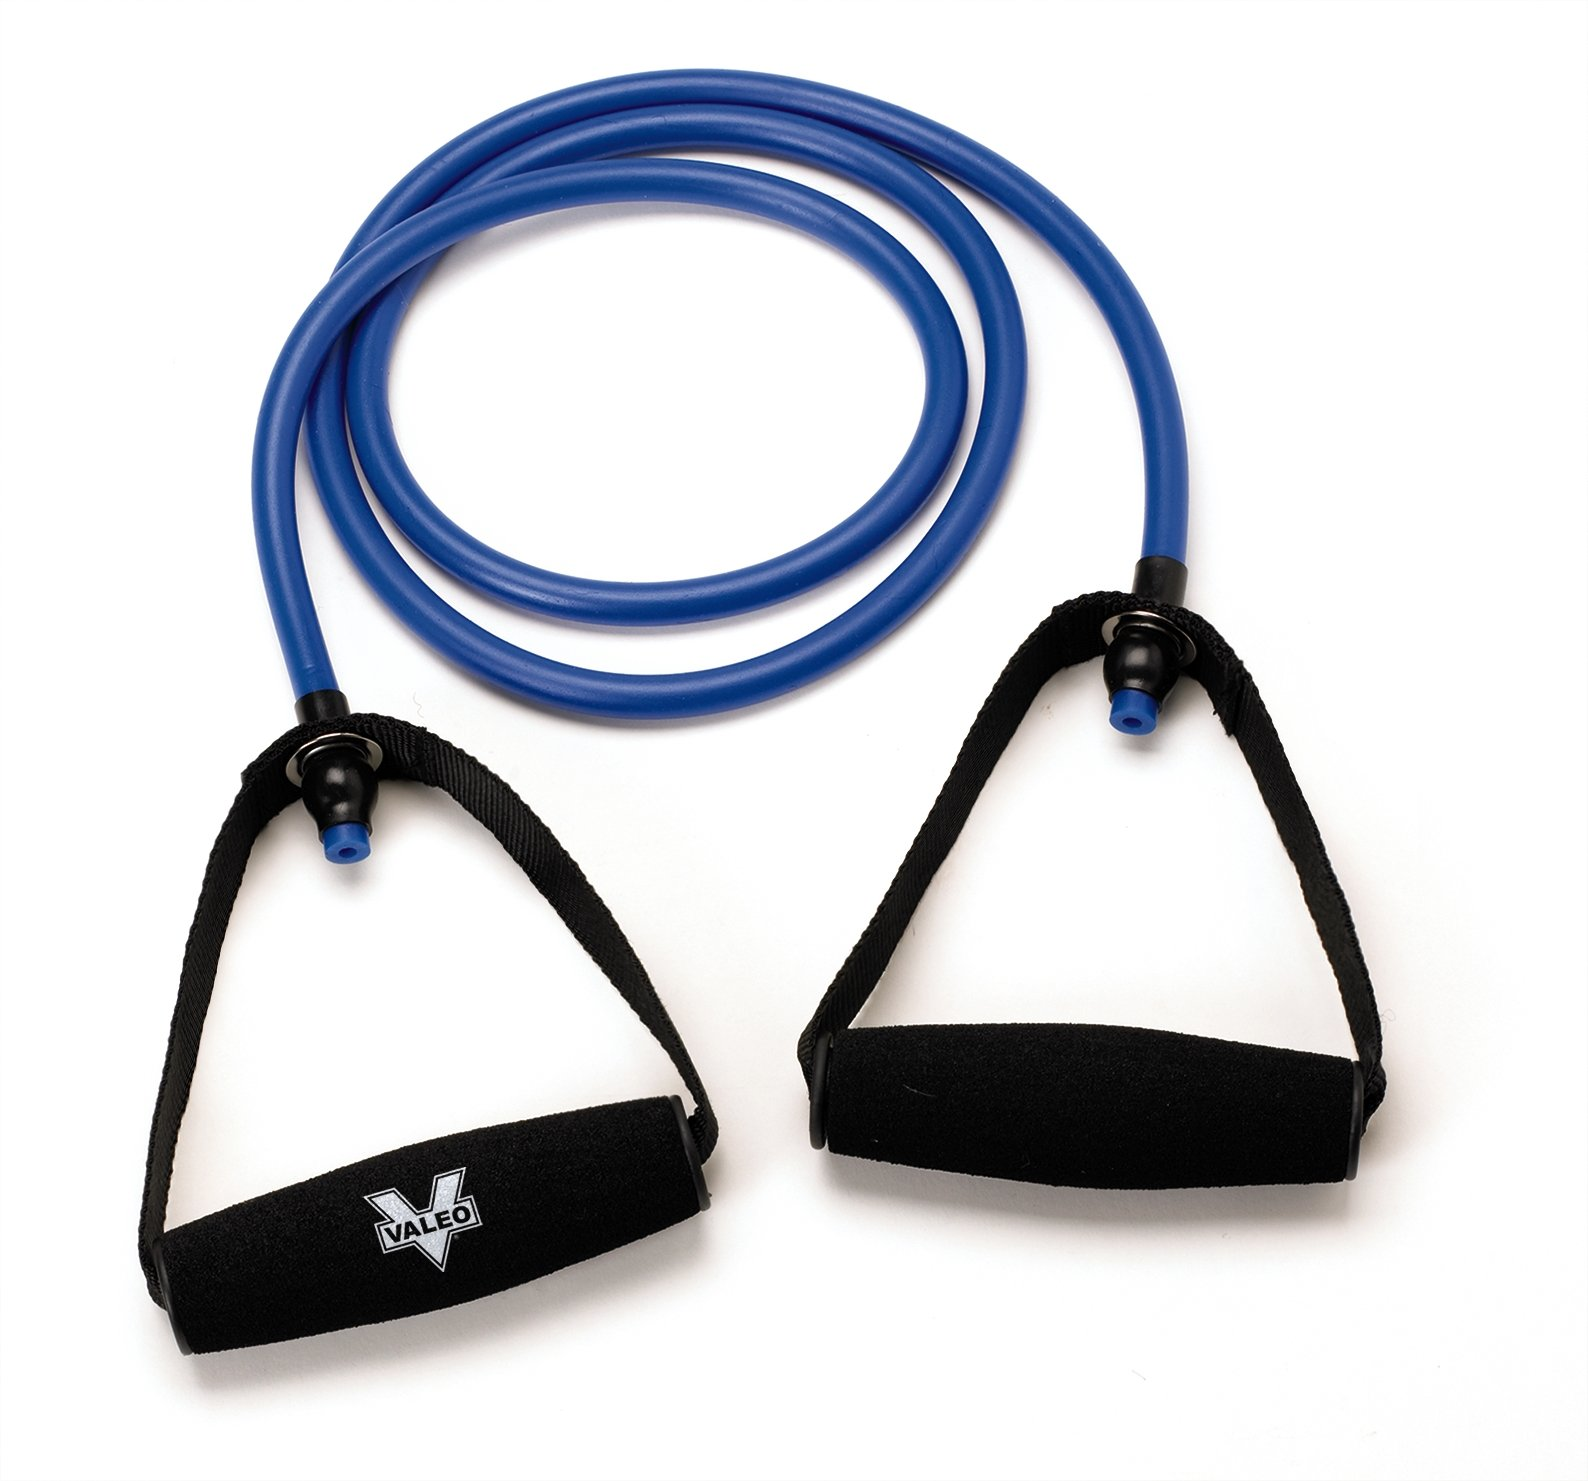 Valeo 4-Foot Resistance Tube Designed for Heavy Resistance With Durable Natural Rubber Tubing And Cushioned Foam Handles